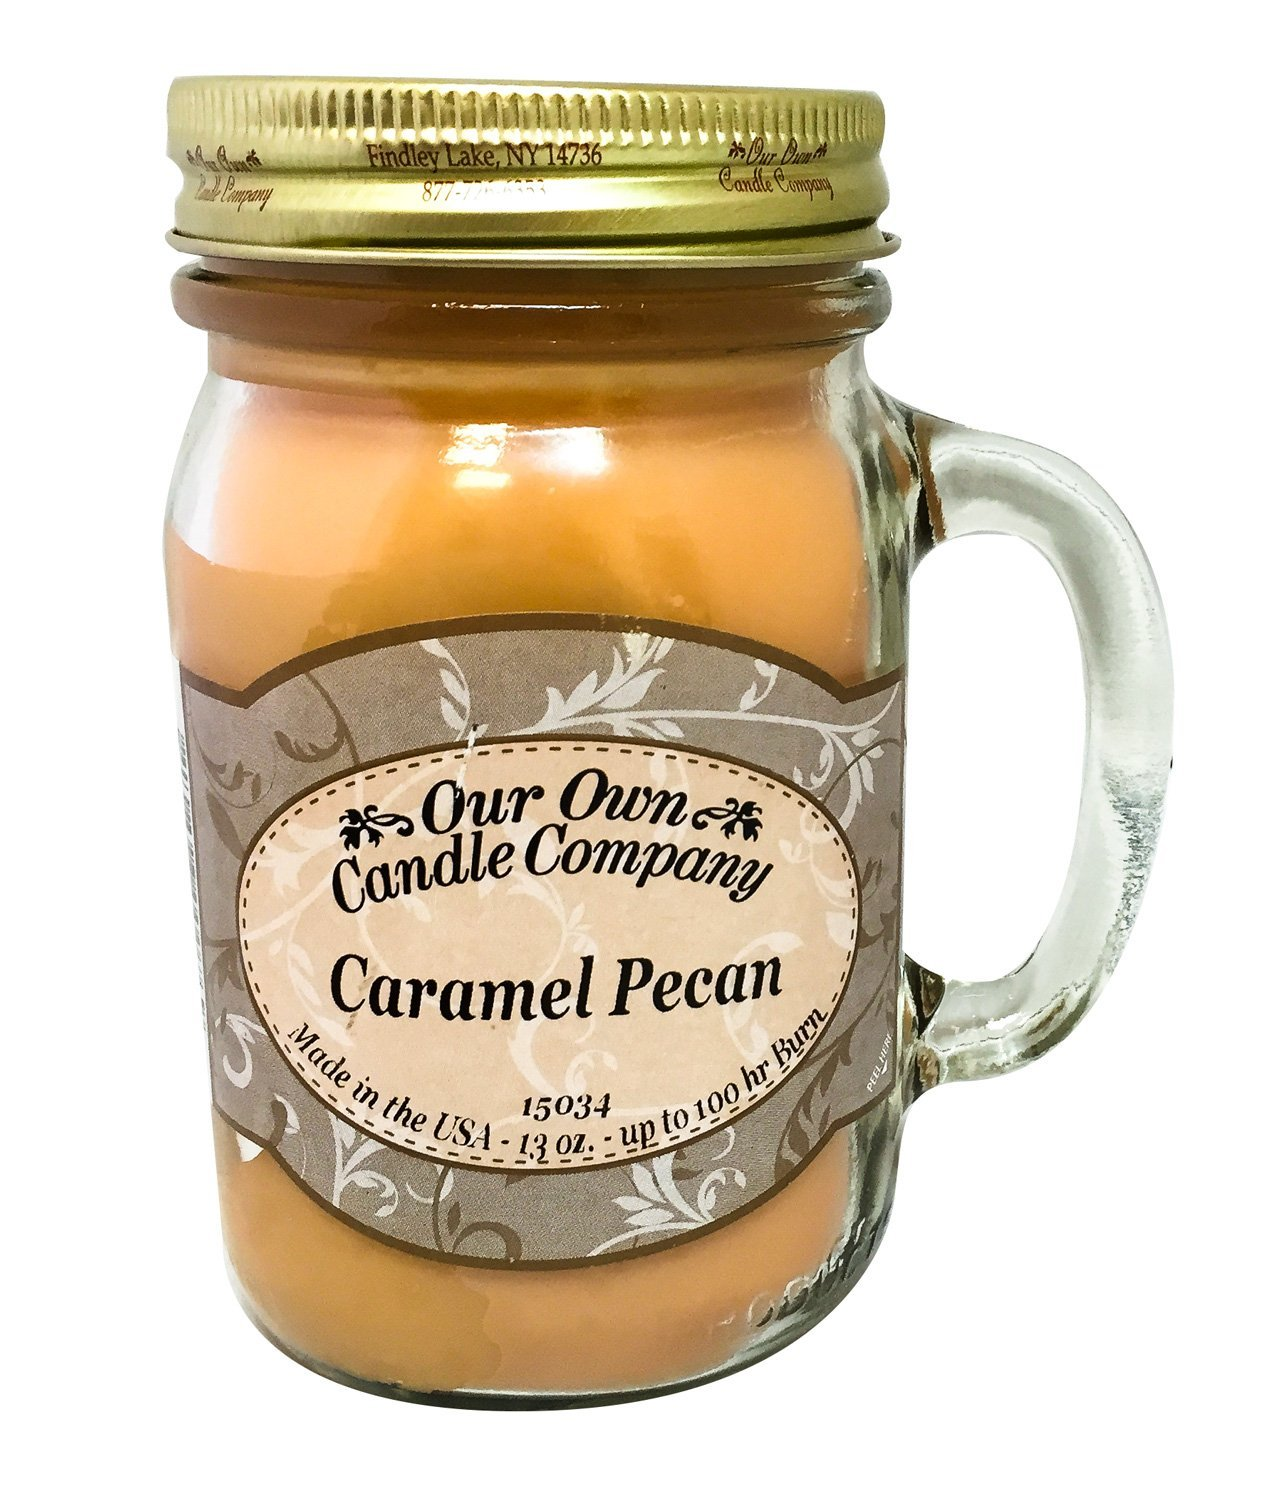 Caramel Pecan Scented 13 Ounce Mason Jar Candle By Our Own Candle Company